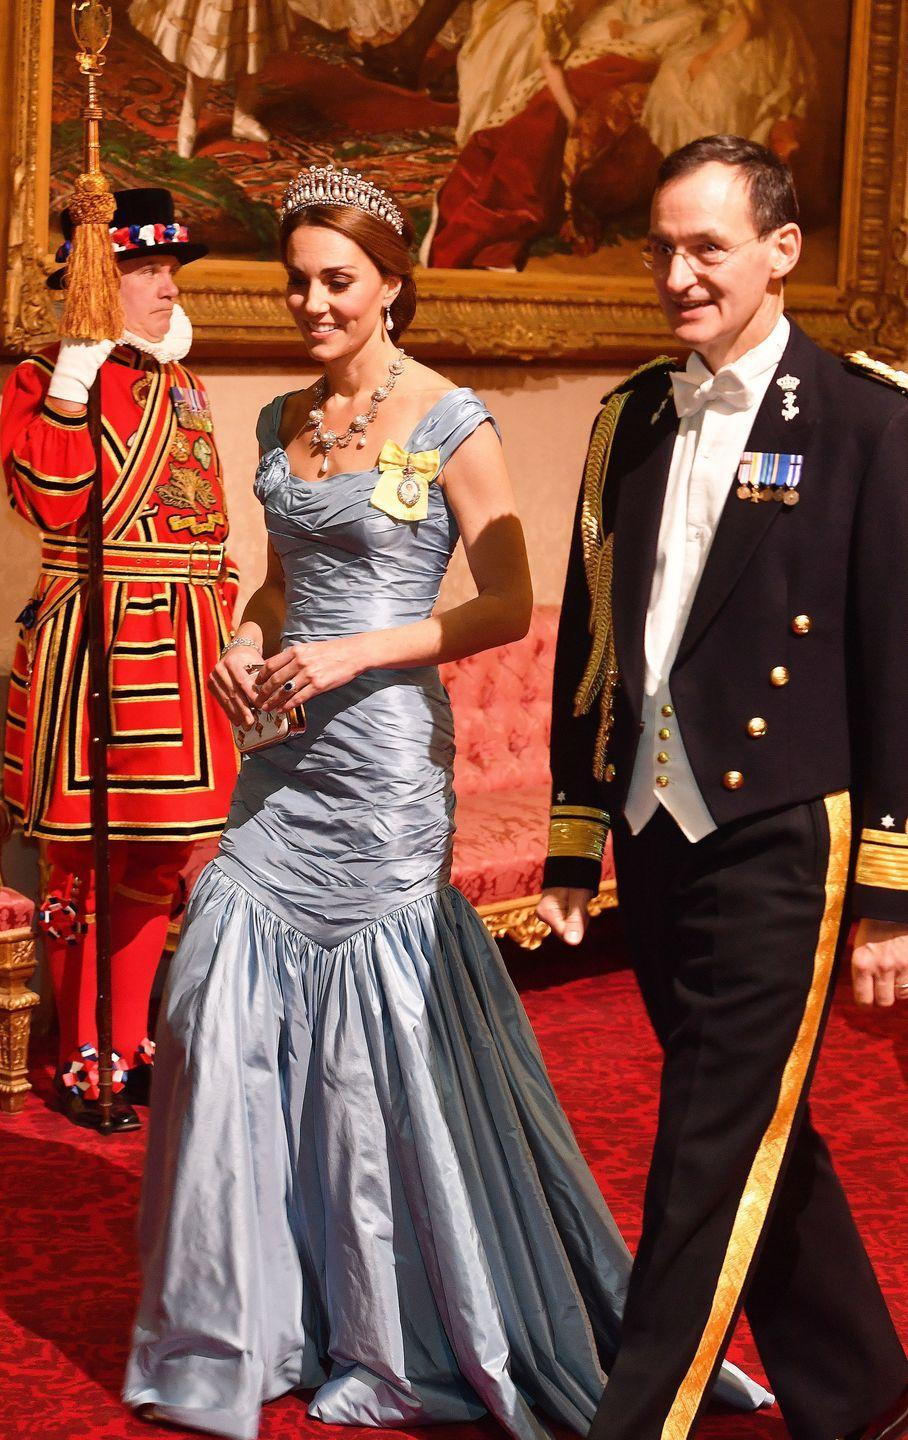 """<p>The Duchess of Cambridge wore an<a href=""""https://www.townandcountrymag.com/society/tradition/a24121823/kate-middleton-alexander-mcqueen-blue-dress-dutch-state-banquet/"""" rel=""""nofollow noopener"""" target=""""_blank"""" data-ylk=""""slk:ice blue dress"""" class=""""link rapid-noclick-resp""""> ice blue dress</a> by Alexander McQueen along with a pearl and diamond necklace and <a href=""""https://www.townandcountrymag.com/society/tradition/a10302981/cambridge-love-knot-tiara/"""" rel=""""nofollow noopener"""" target=""""_blank"""" data-ylk=""""slk:the Cambridge Lover's Knot tiara"""" class=""""link rapid-noclick-resp"""">the Cambridge Lover's Knot tiara</a> for the State Banquet. </p>"""